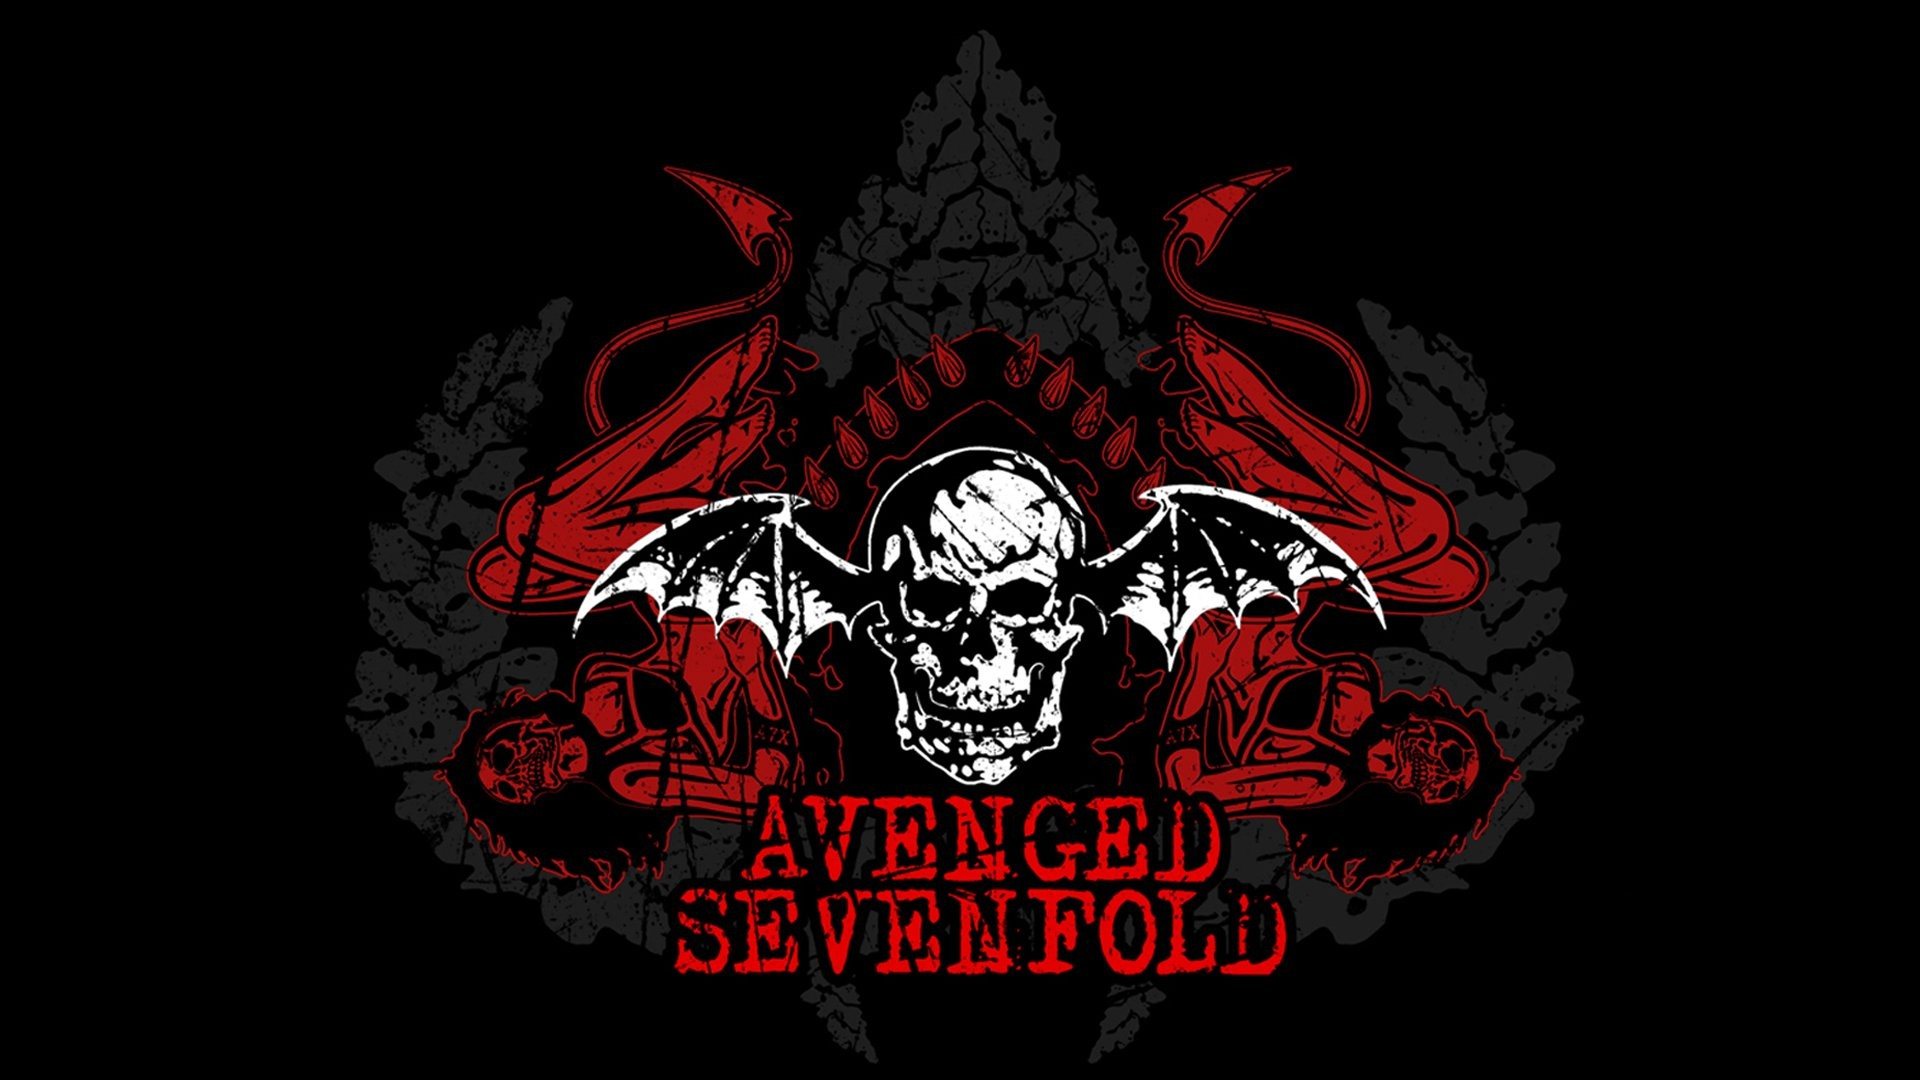 Avenged sevenfold wallpaper download free cool hd backgrounds 1920x1080 music avenged sevenfold download 1920x1080 voltagebd Image collections